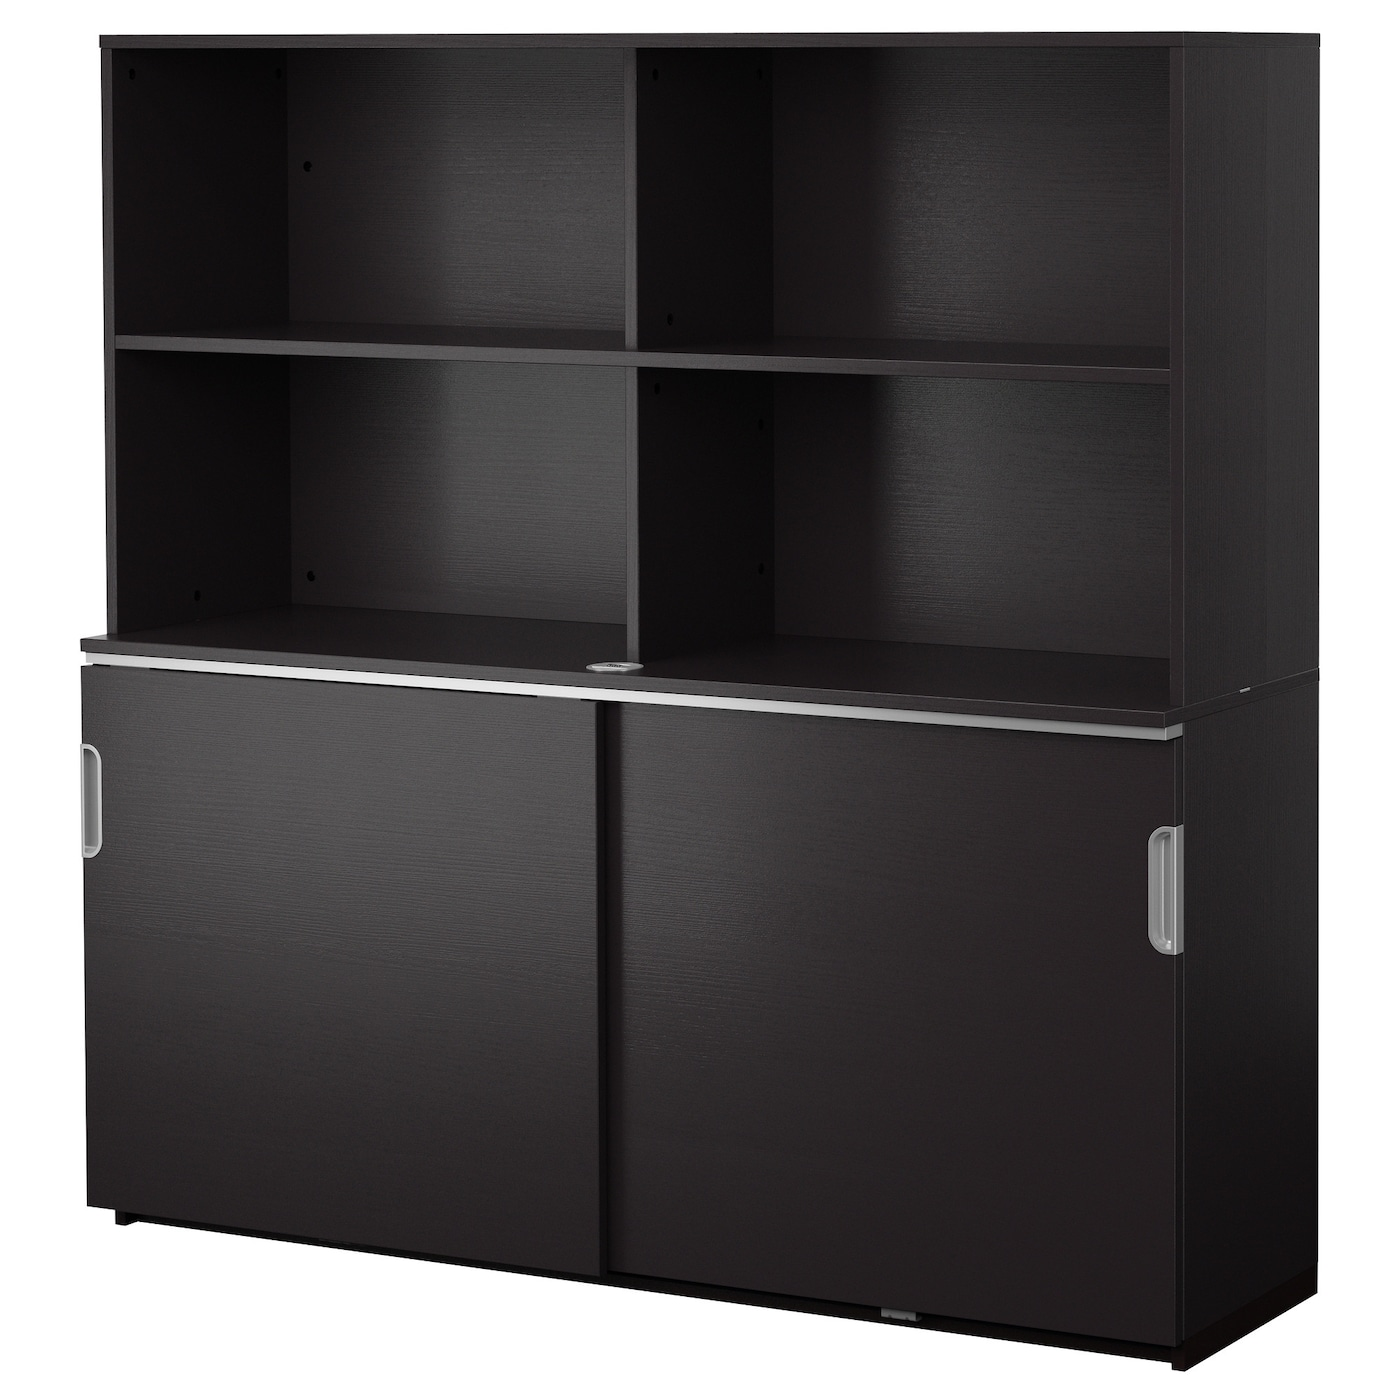 galant storage combination w sliding doors black brown 160x160 cm ikea. Black Bedroom Furniture Sets. Home Design Ideas